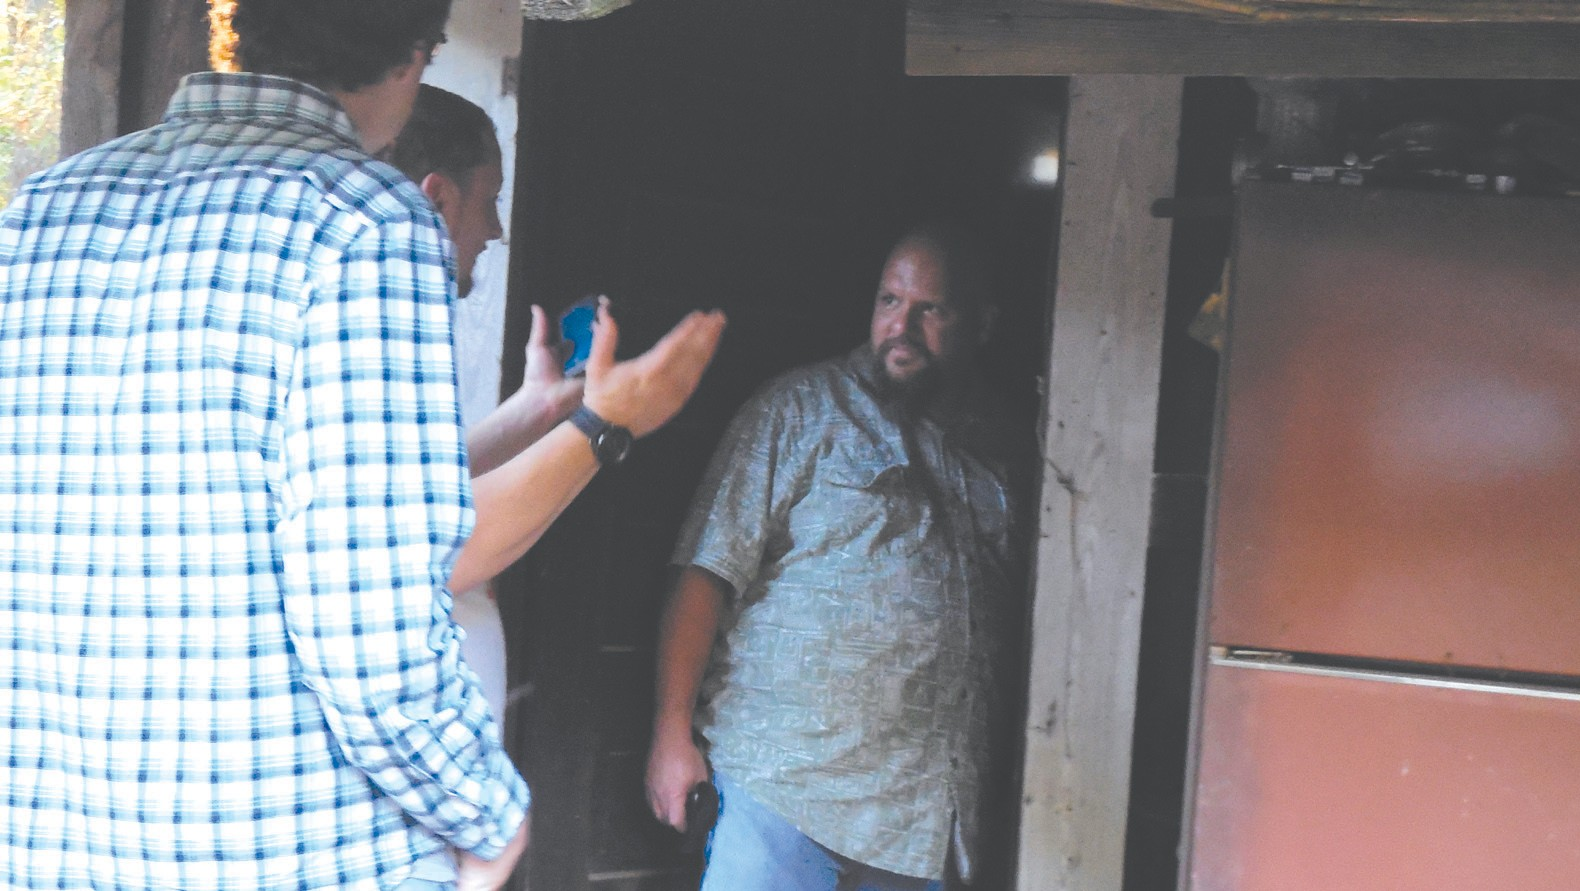 WCRL morning show host Jeremy Lesley was one of the few brave enough to venture into one of Blount County's most haunted areas.